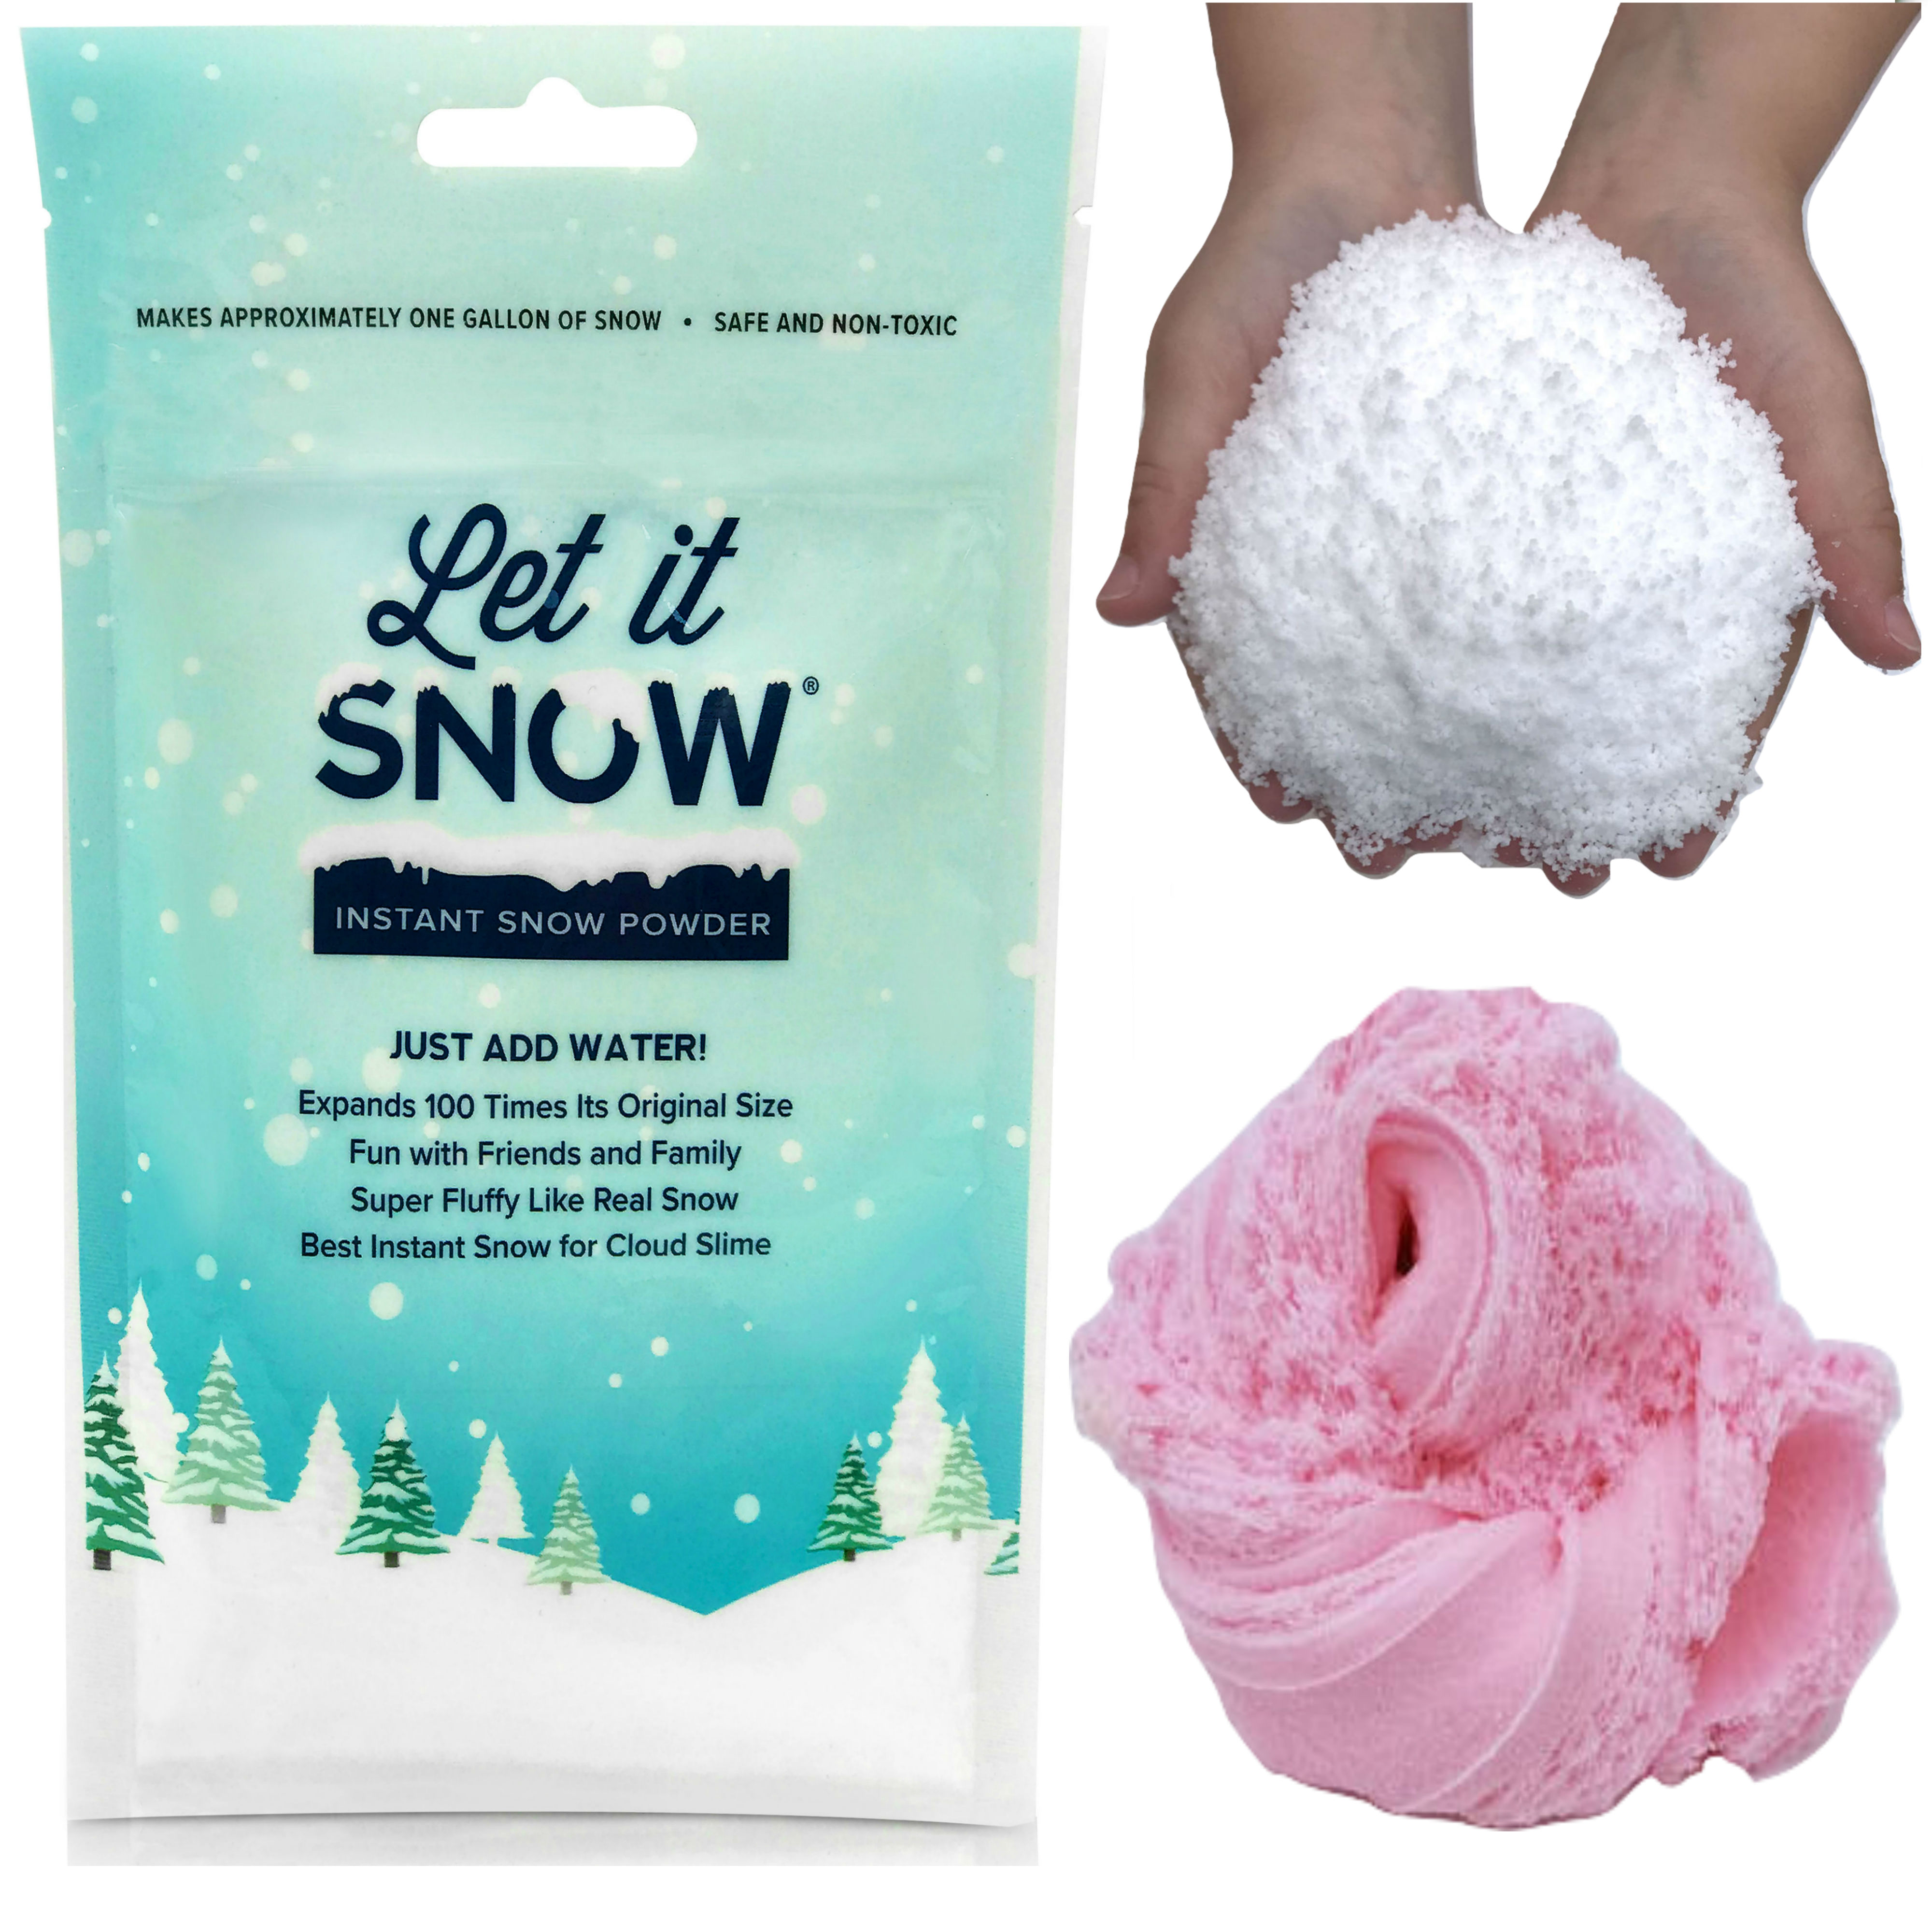 Let it Snow Instant Snow Powder for Slime, Premium Fake Snow Perfect for Cloud Slime Supplies! Made in the USA - Safe and Non-Toxic